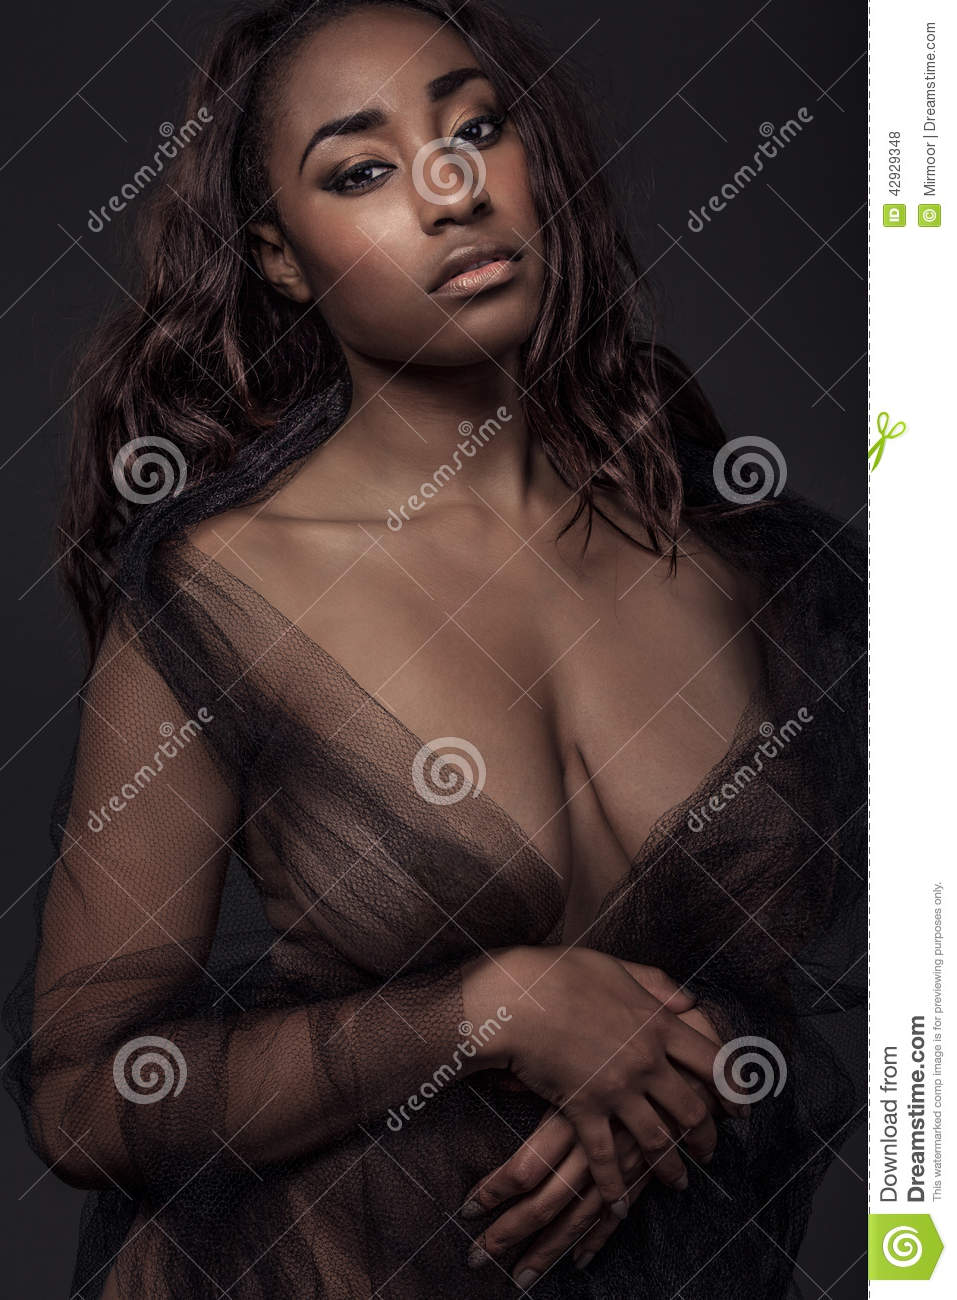 Sexiest african american woman